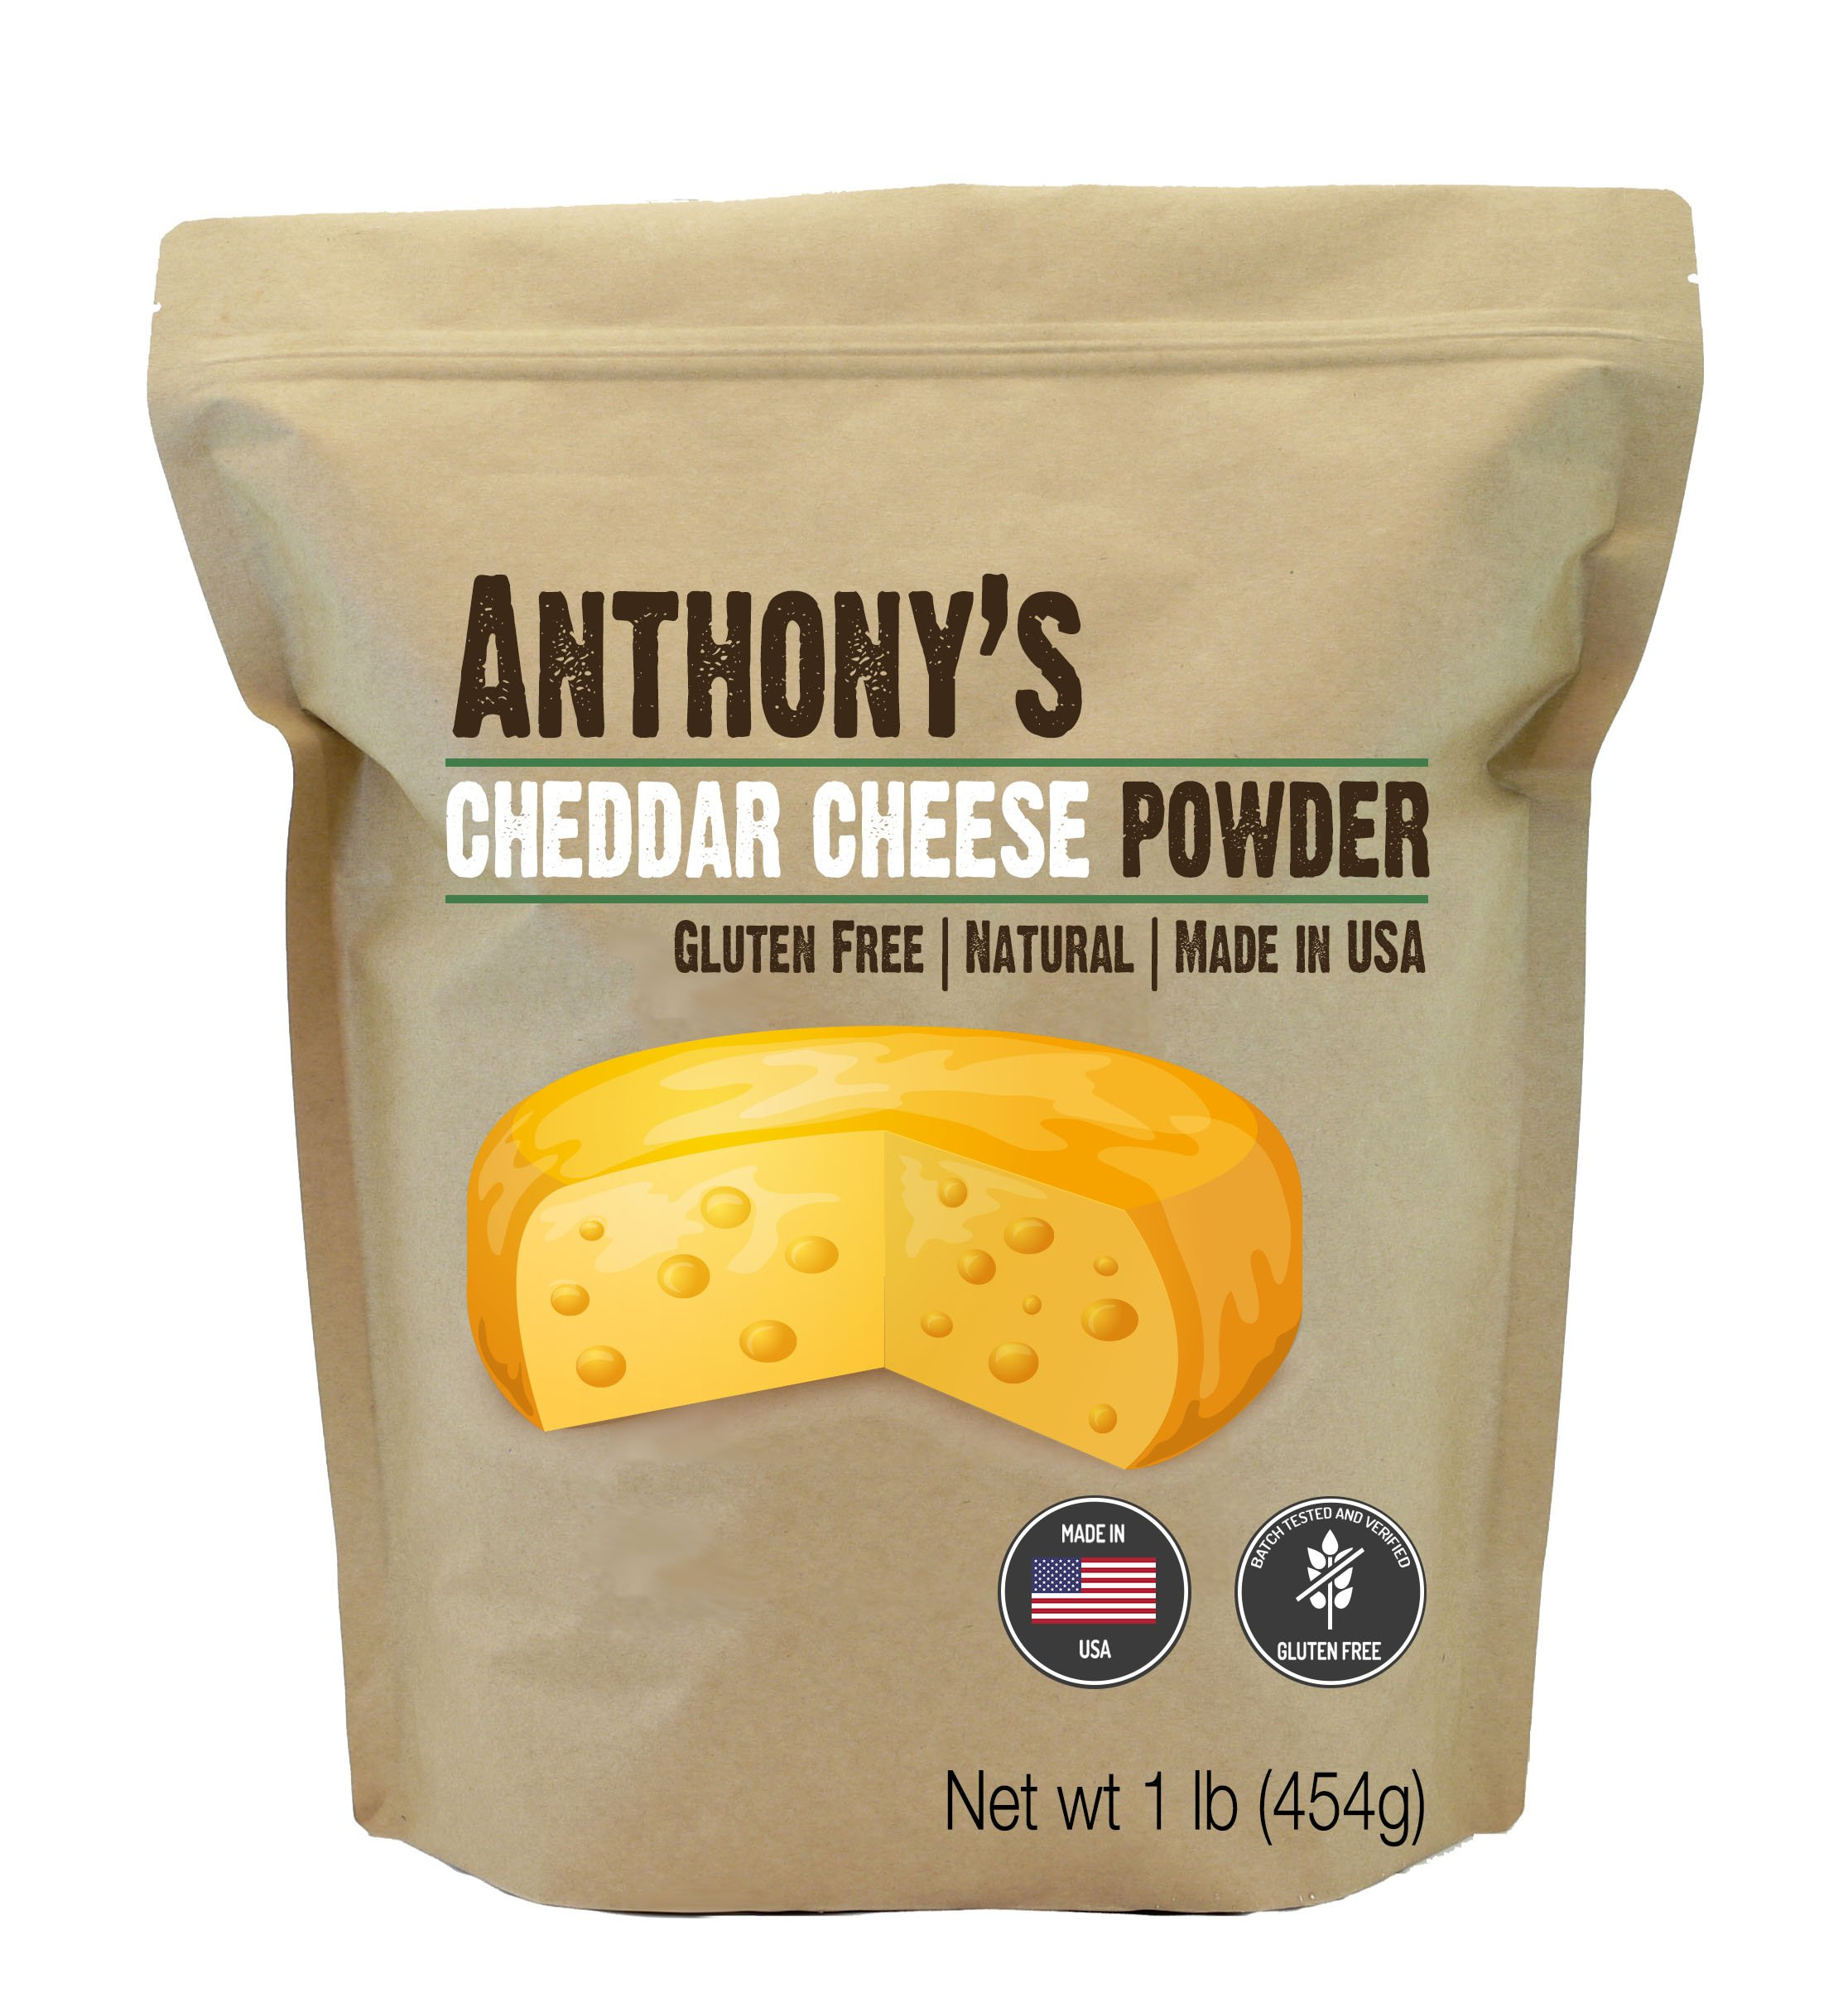 Anthony's Premium Cheddar Cheese Powder (1lb) Batch Tested and Verified Gluten Free, No Artificial Colors